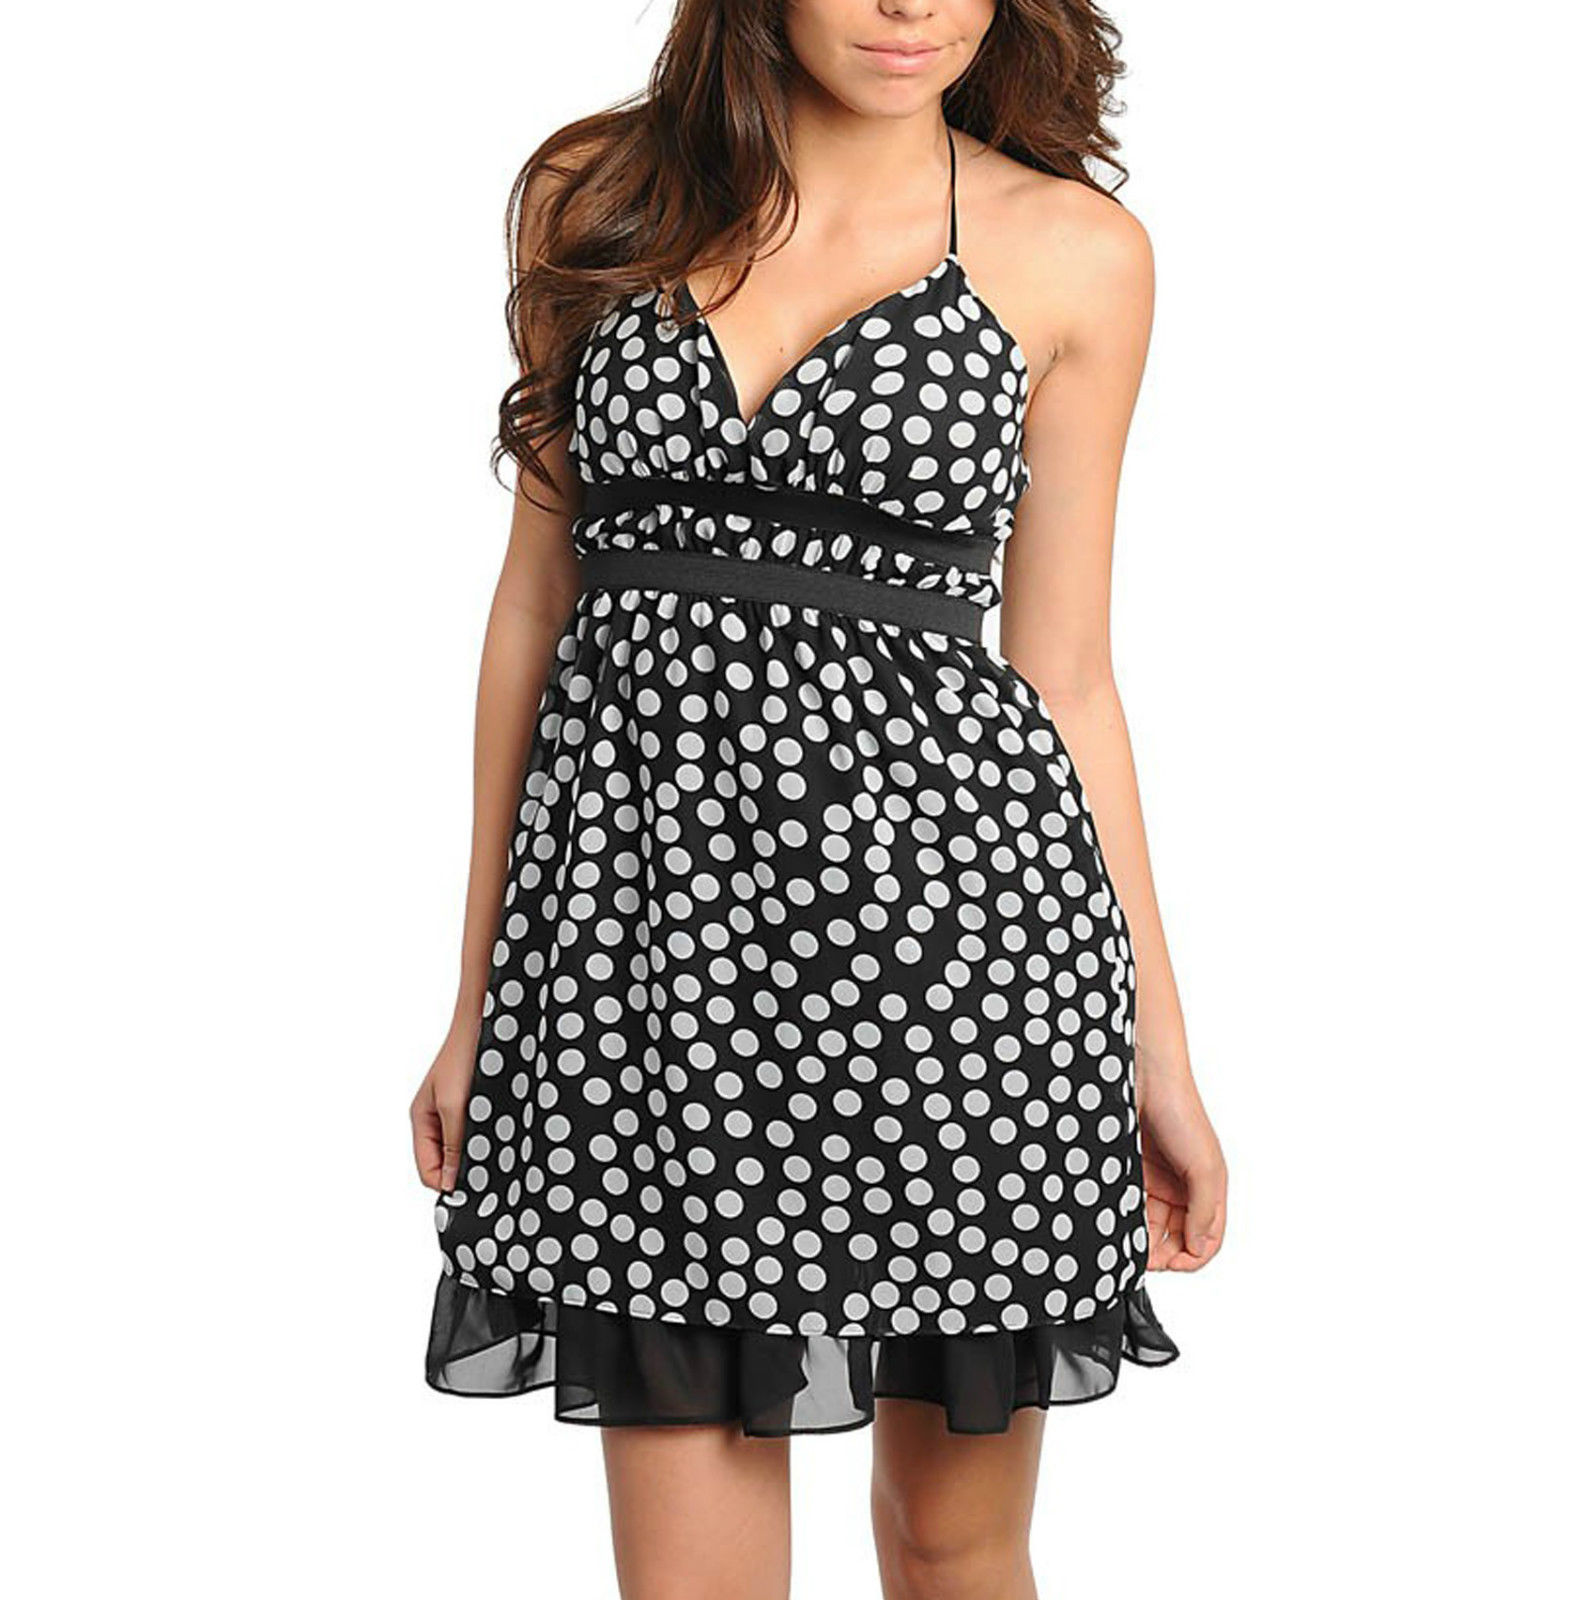 COWGIRL STYLE DRESS Black and White Polka Dot Empire Waist Spaghetti Strap Mini Dress